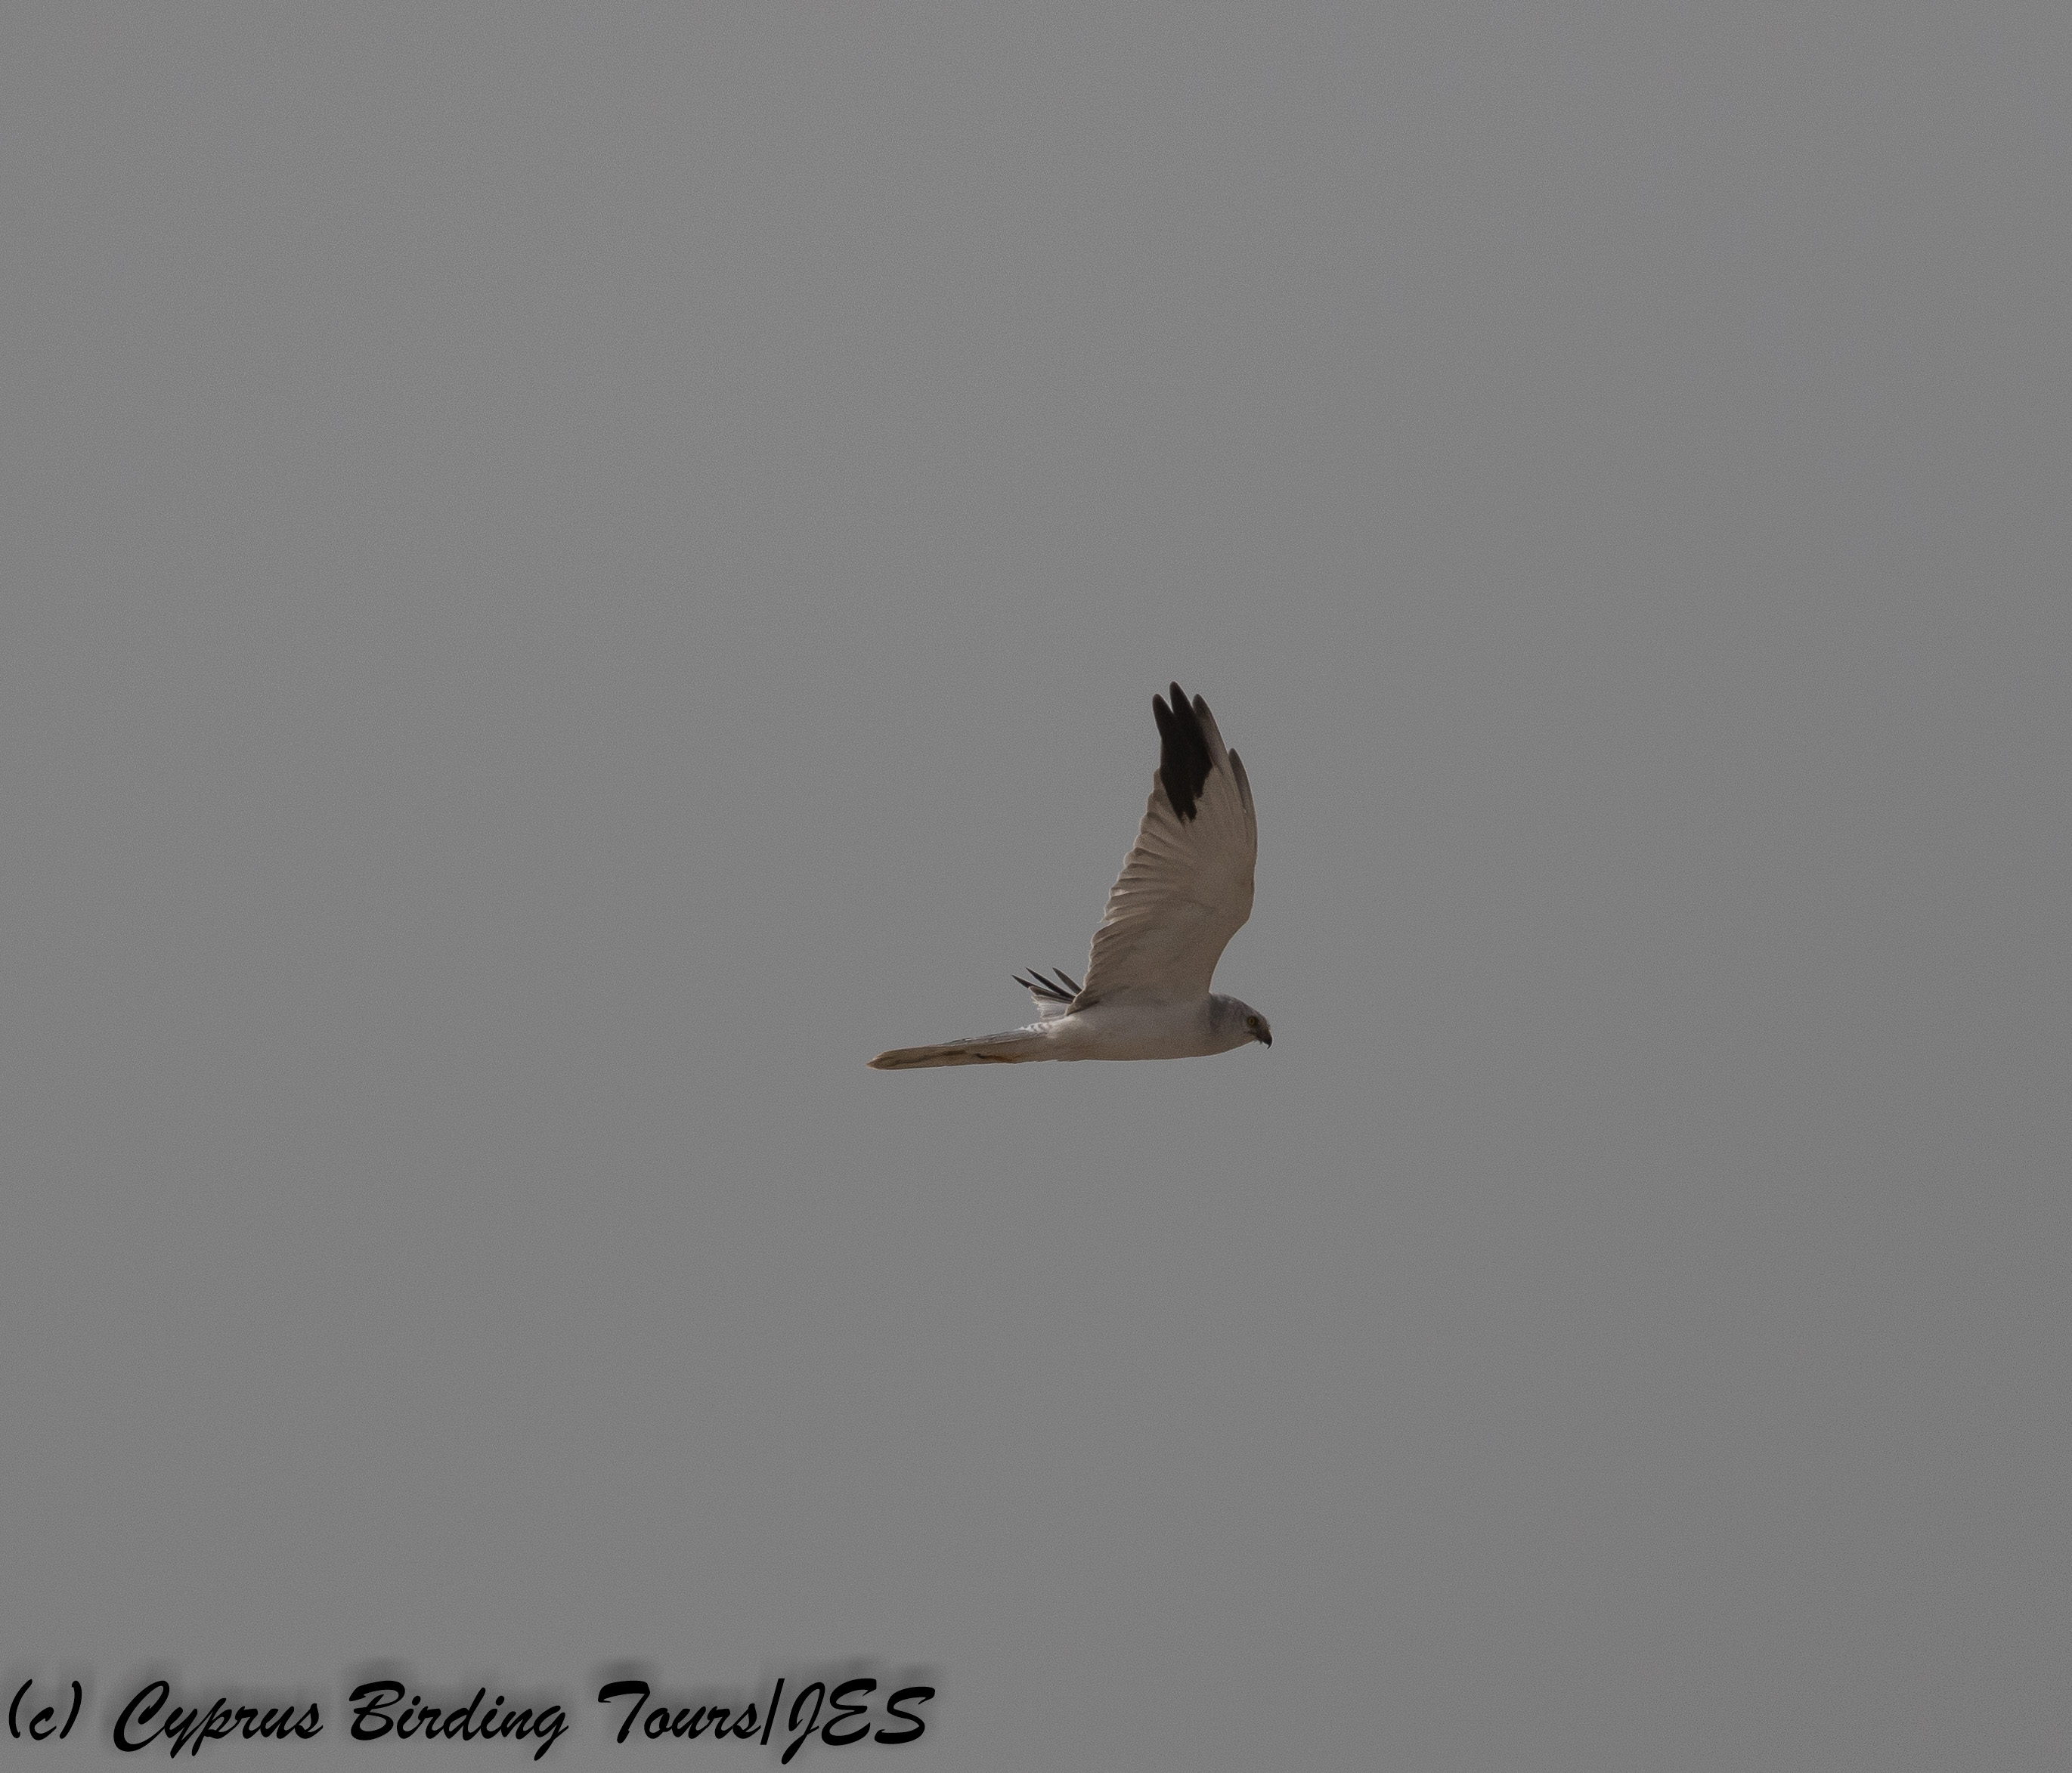 Pallid Harrier, Mandria 14th November 2017 (c) Cyprus Birding Tours